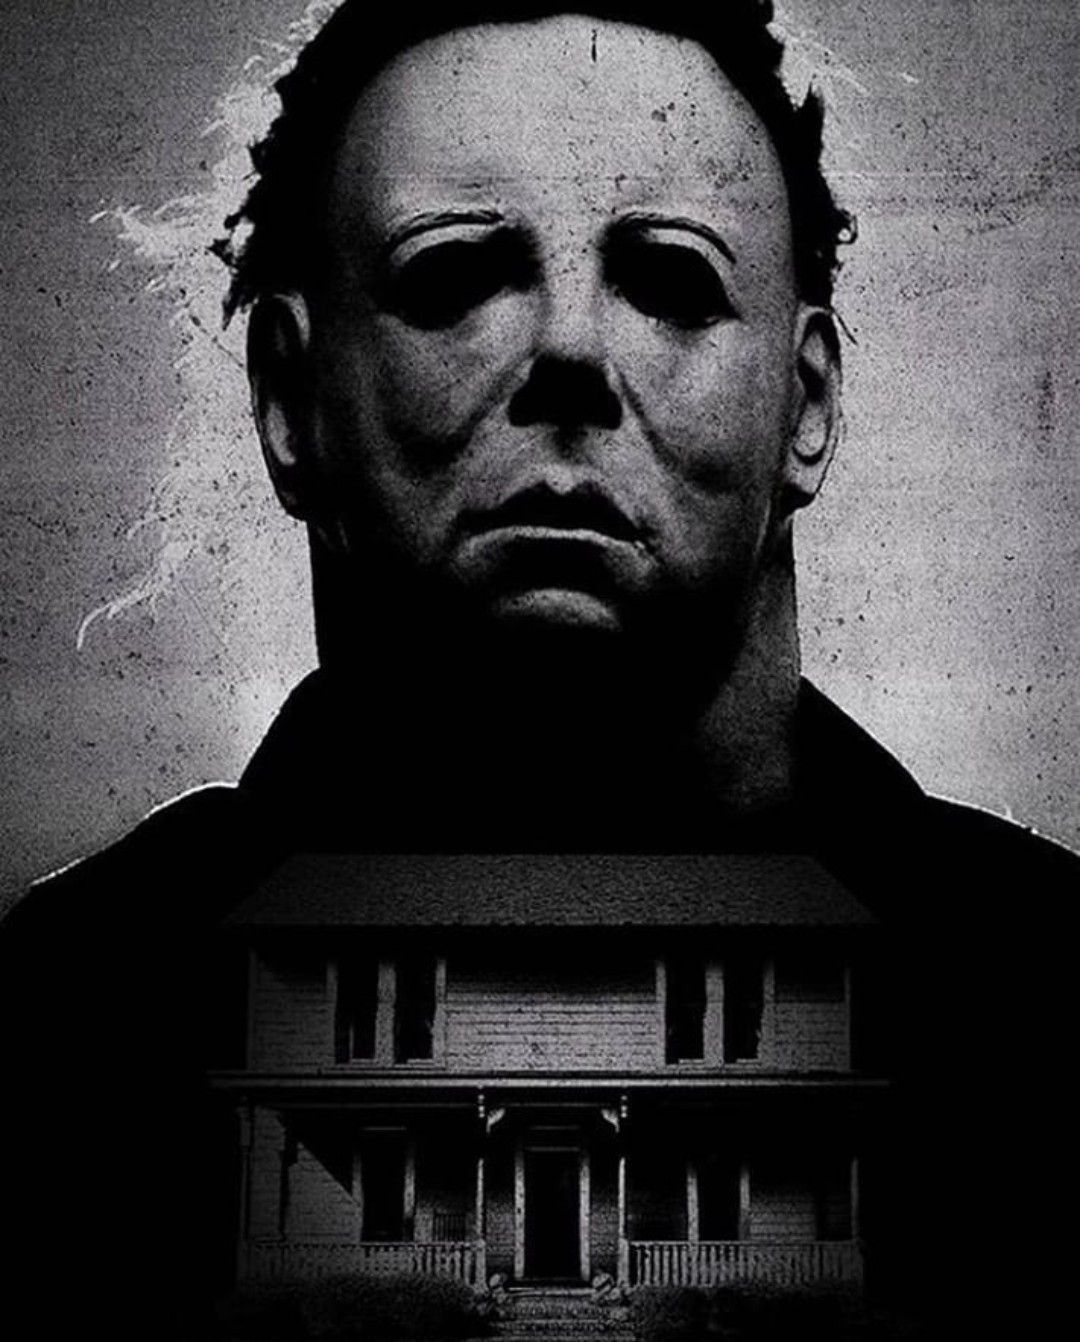 Halloween 2018 Michael Myers Wallpaper Http Wallpapersalbum Com Halloween 2018 Michael Myers Wallpaper H In 2020 Michael Myers Art Michael Myers Michael Myers Tattoo